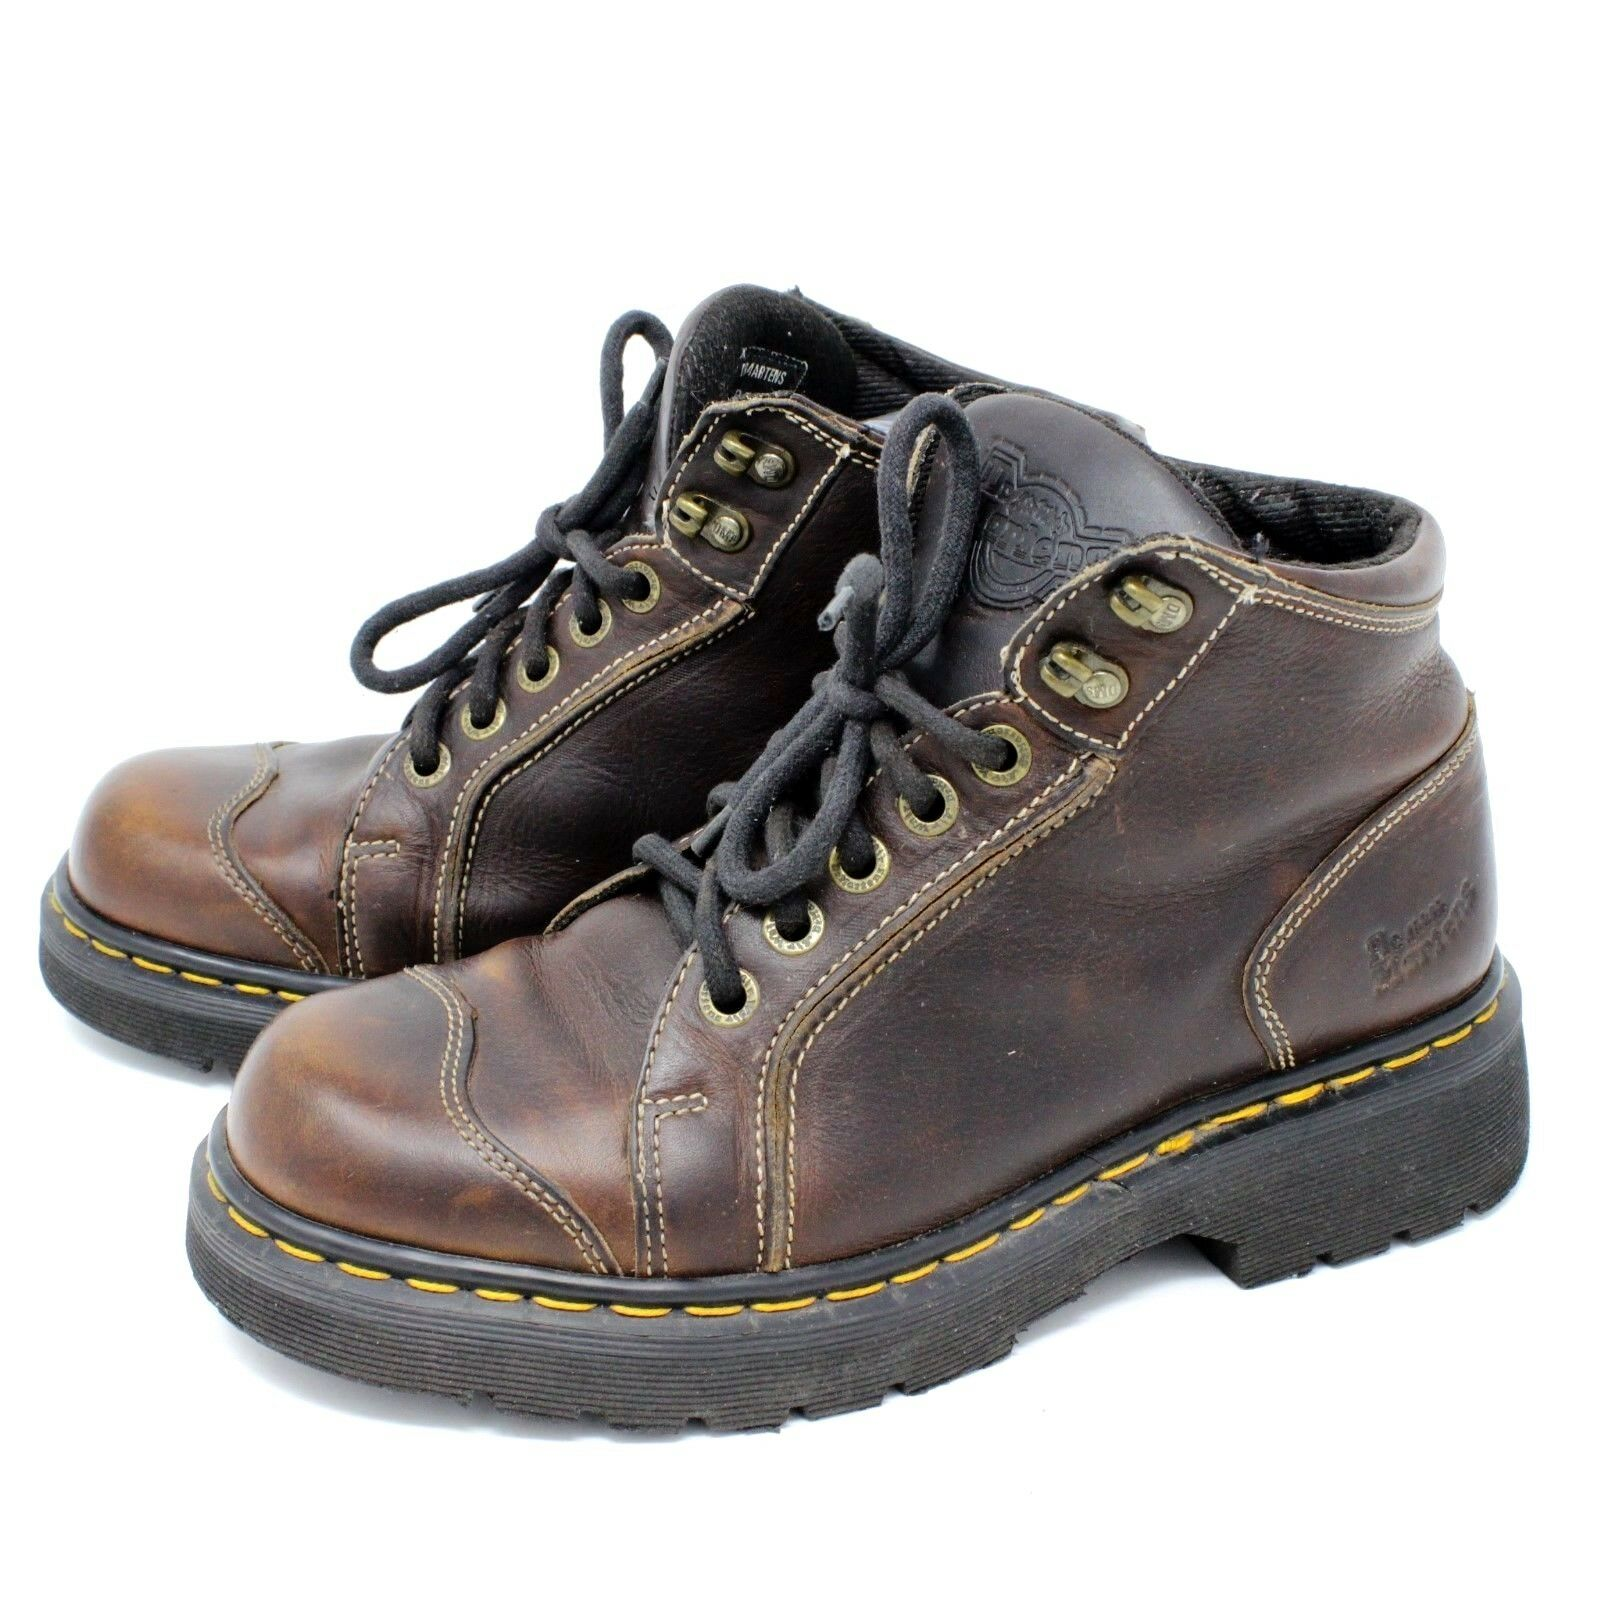 Dr. Martens Womens Brown Leather Boot Lace Up US 8 Model 9406 Made In England